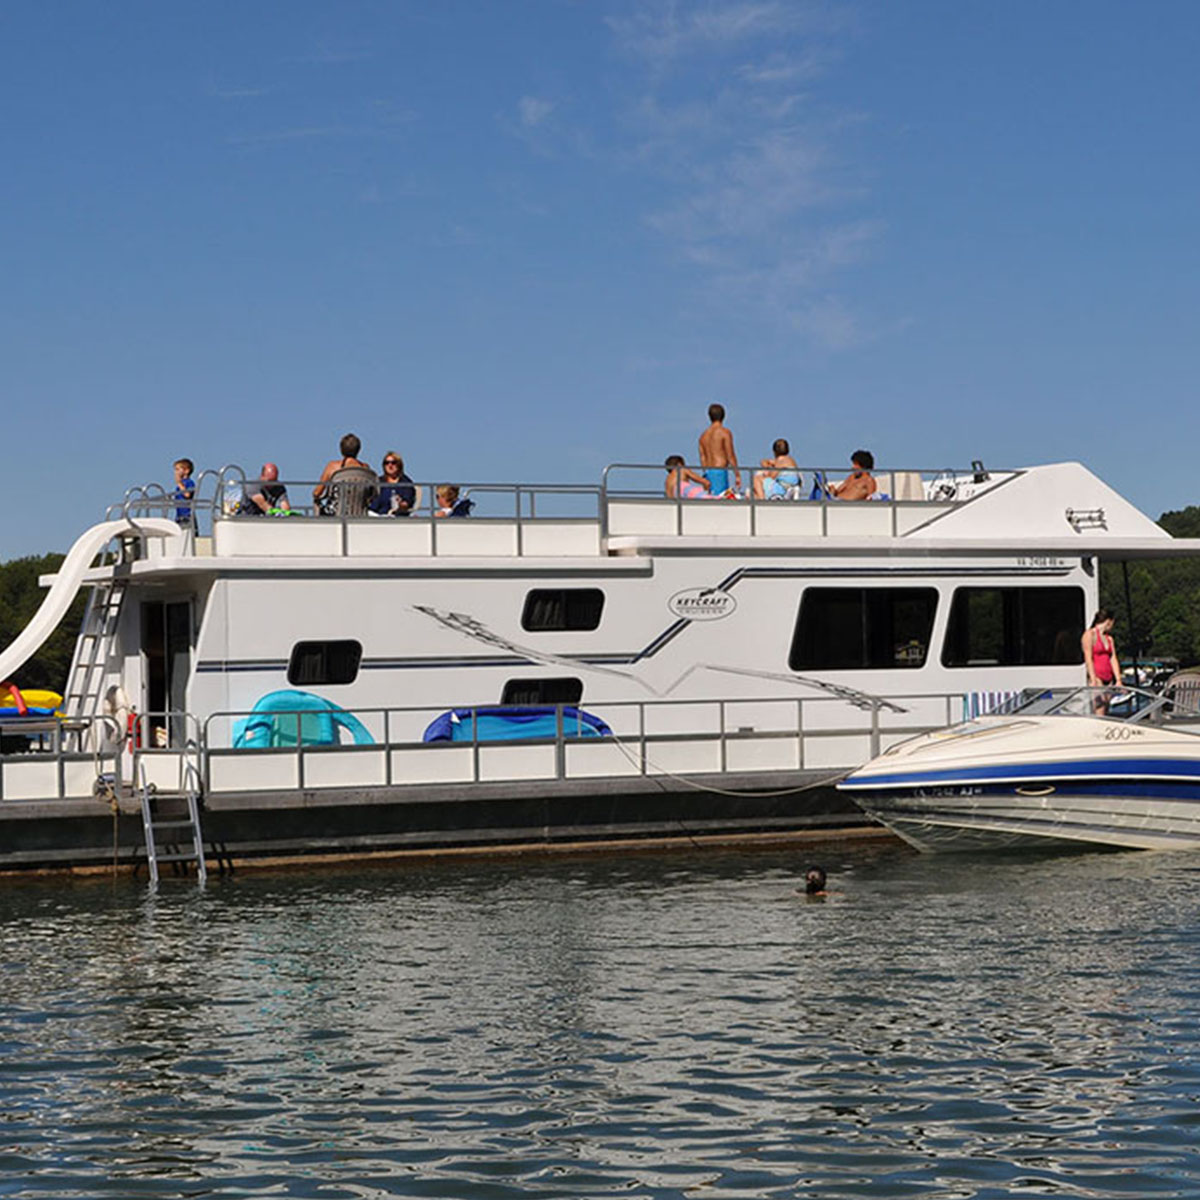 Houseboats – Smith Mountain Lake Houseboat Rentals at Parrot